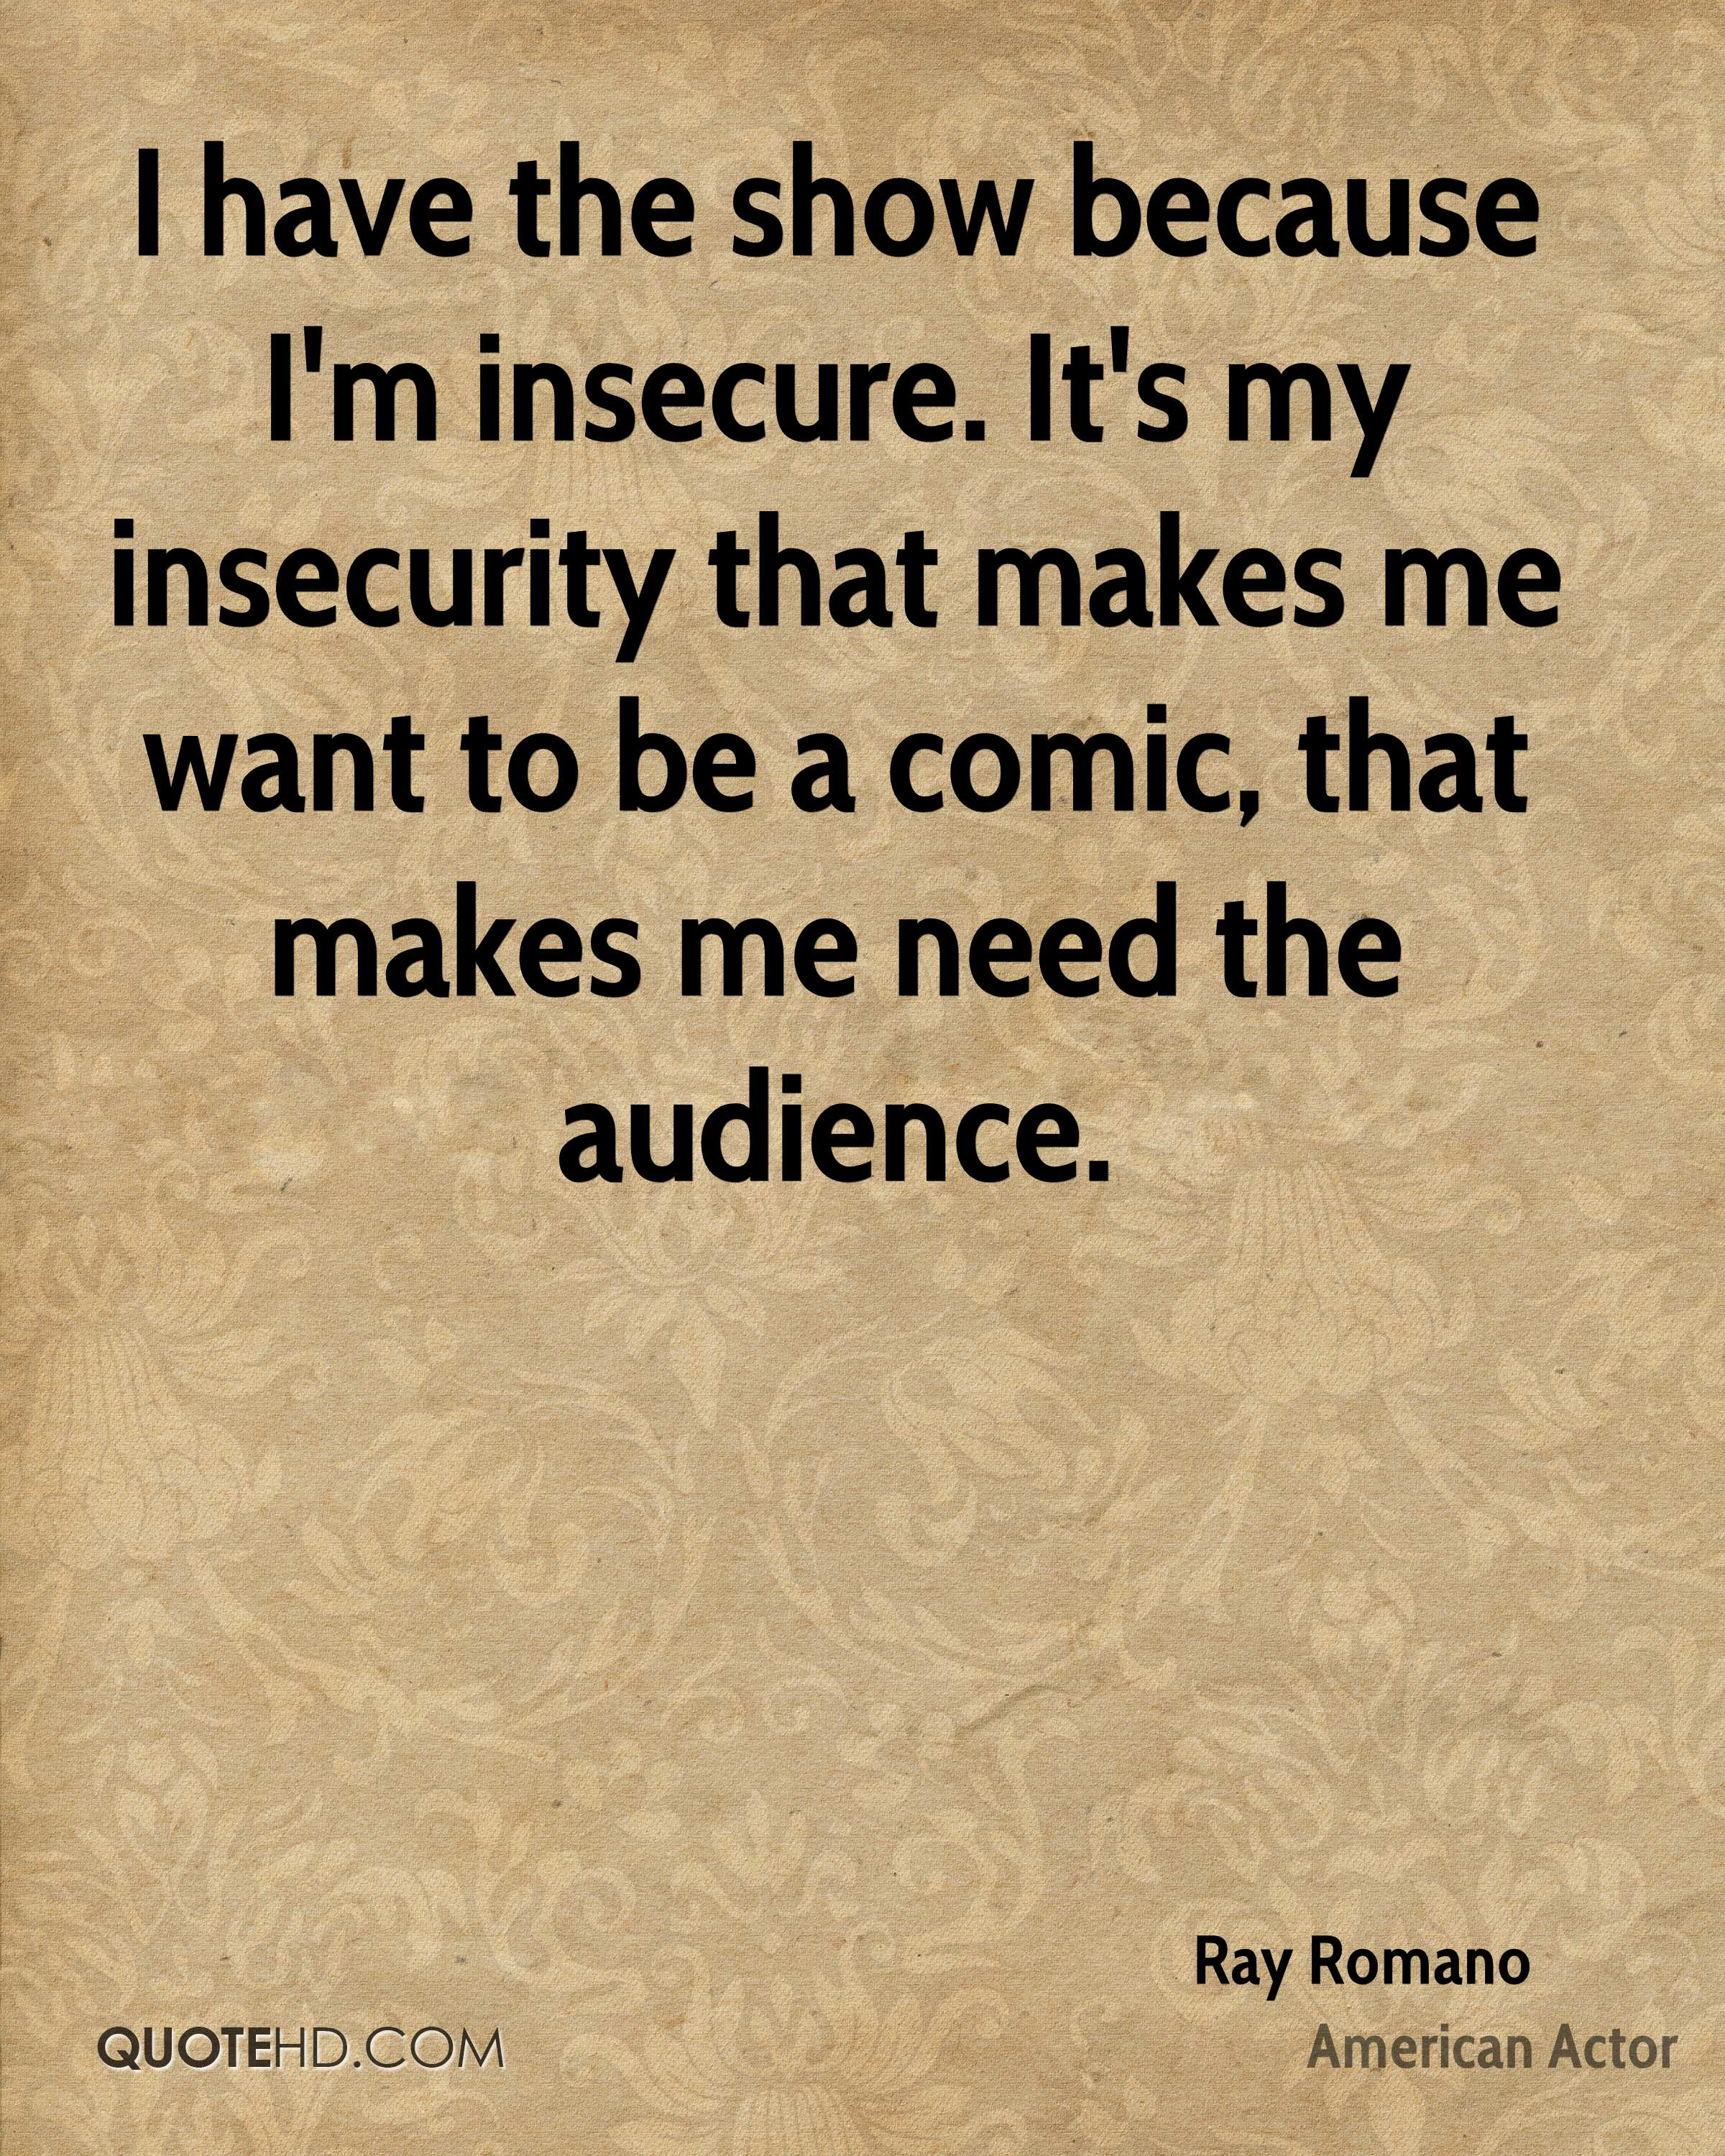 I have the show because I'm insecure. It's my insecurity that makes me want to be a comic, that makes me need the audience.